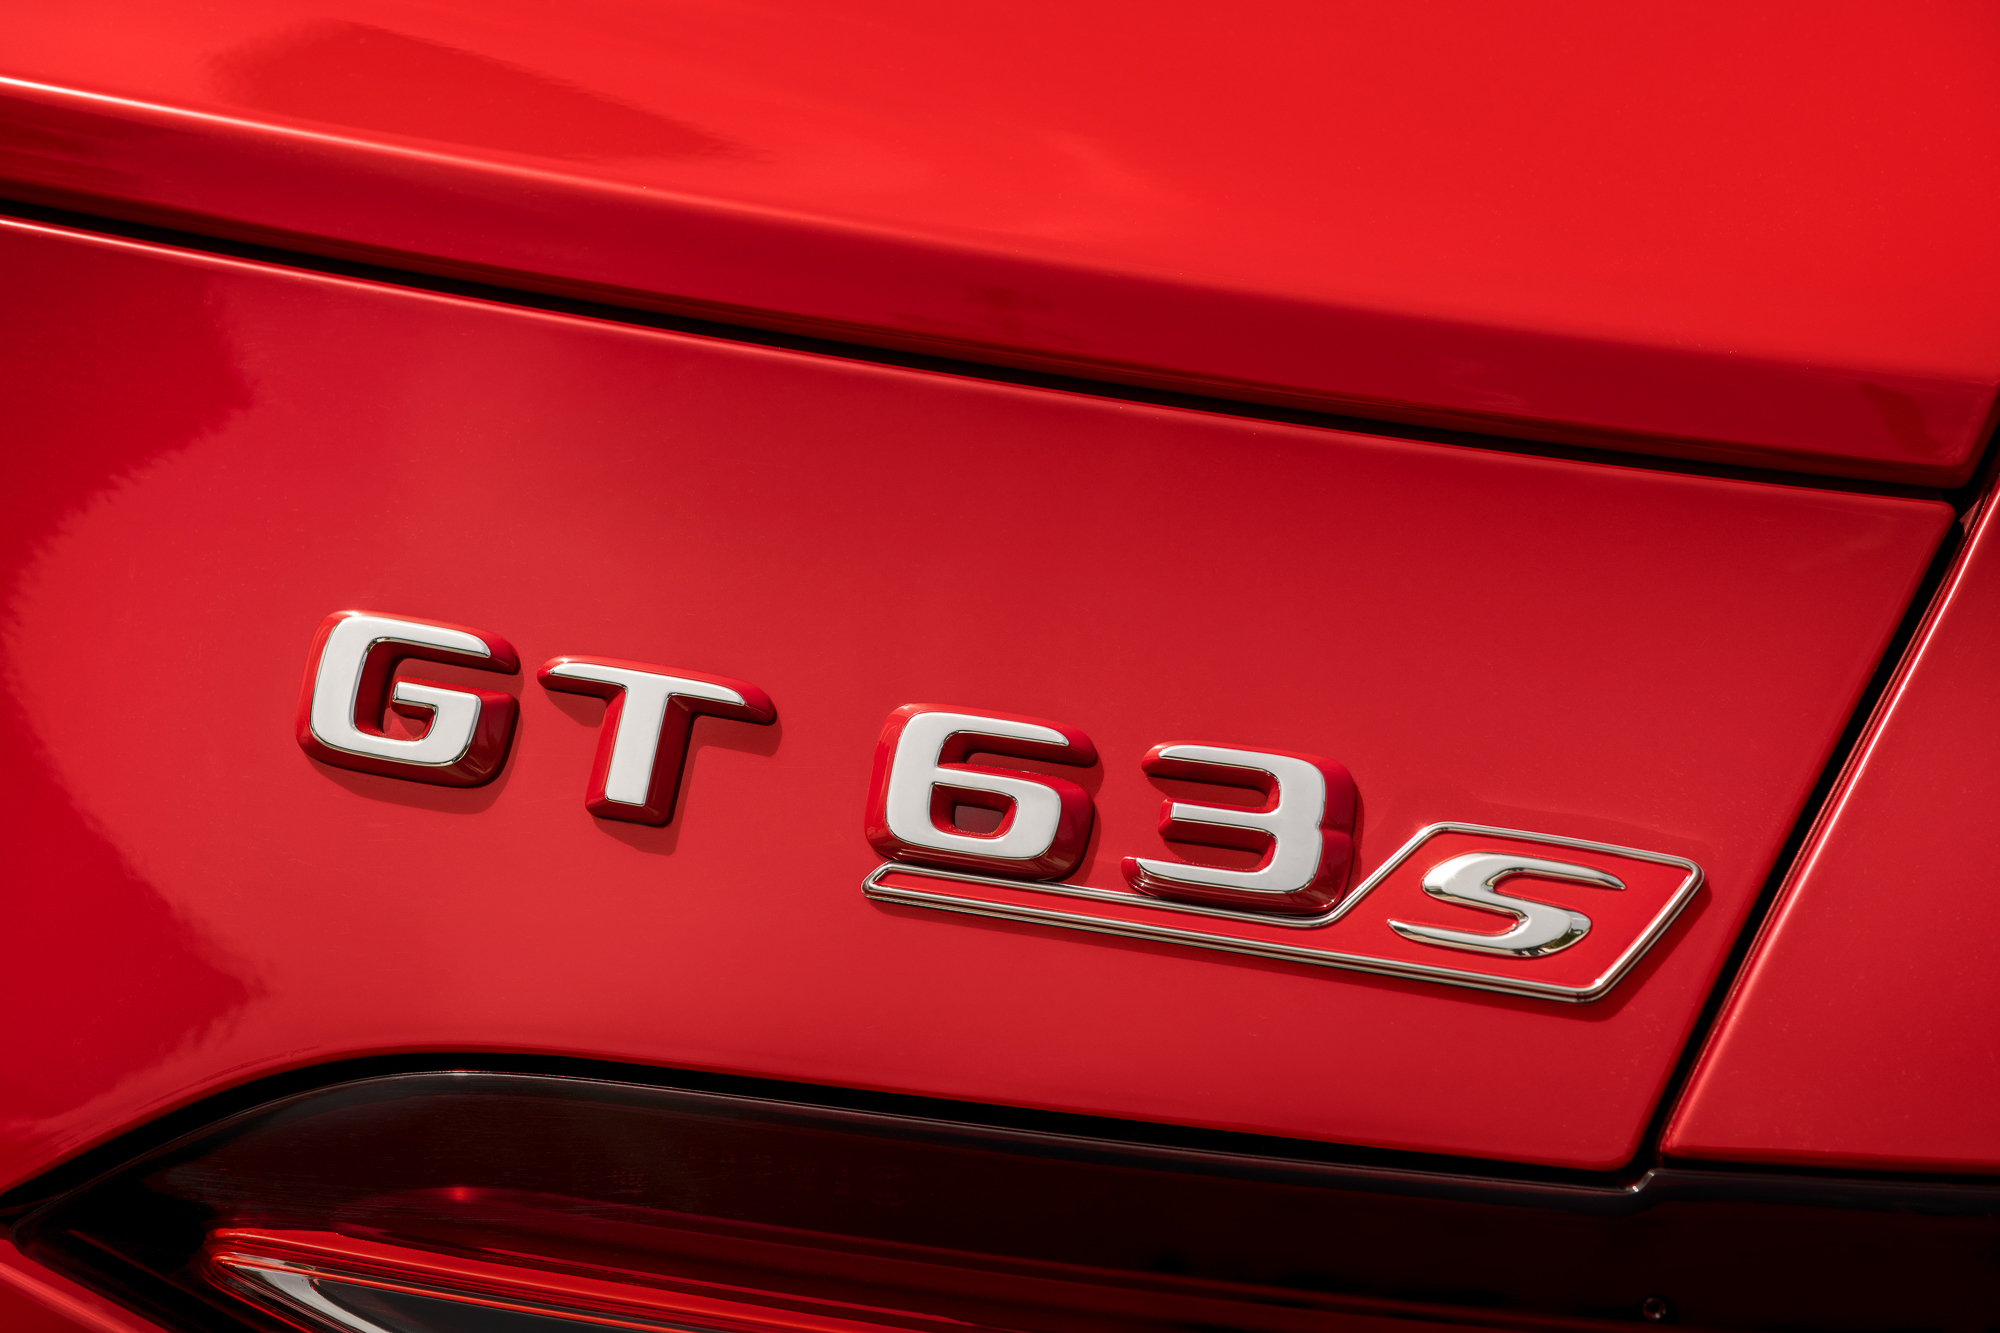 2023-Mercedes-AMG-GT-63-S-E-Performance badging